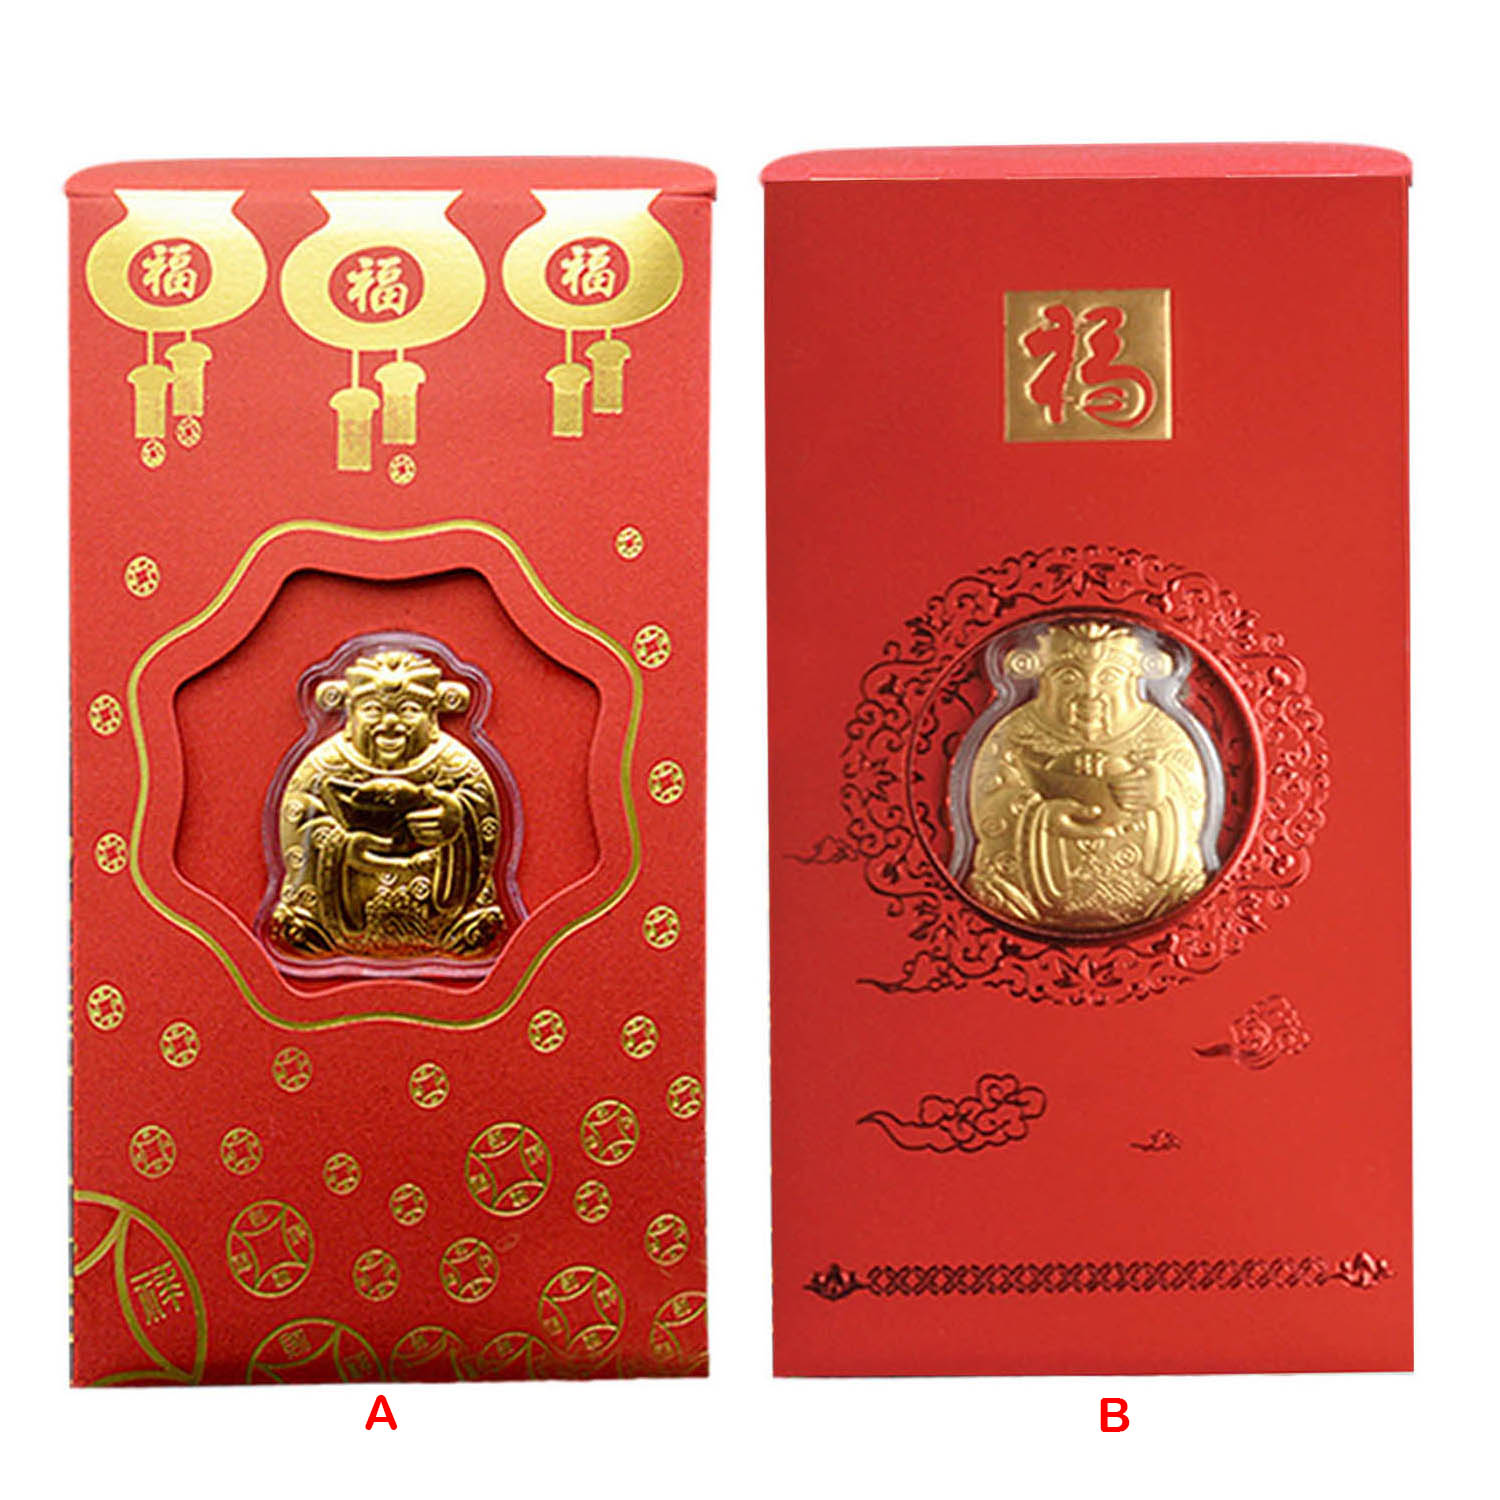 2020 Chinese Red Envelope Hong Bao Pocket Money Packet With Rat Commemorative Coin Of Wealth For 2020 New Year Spring Festival